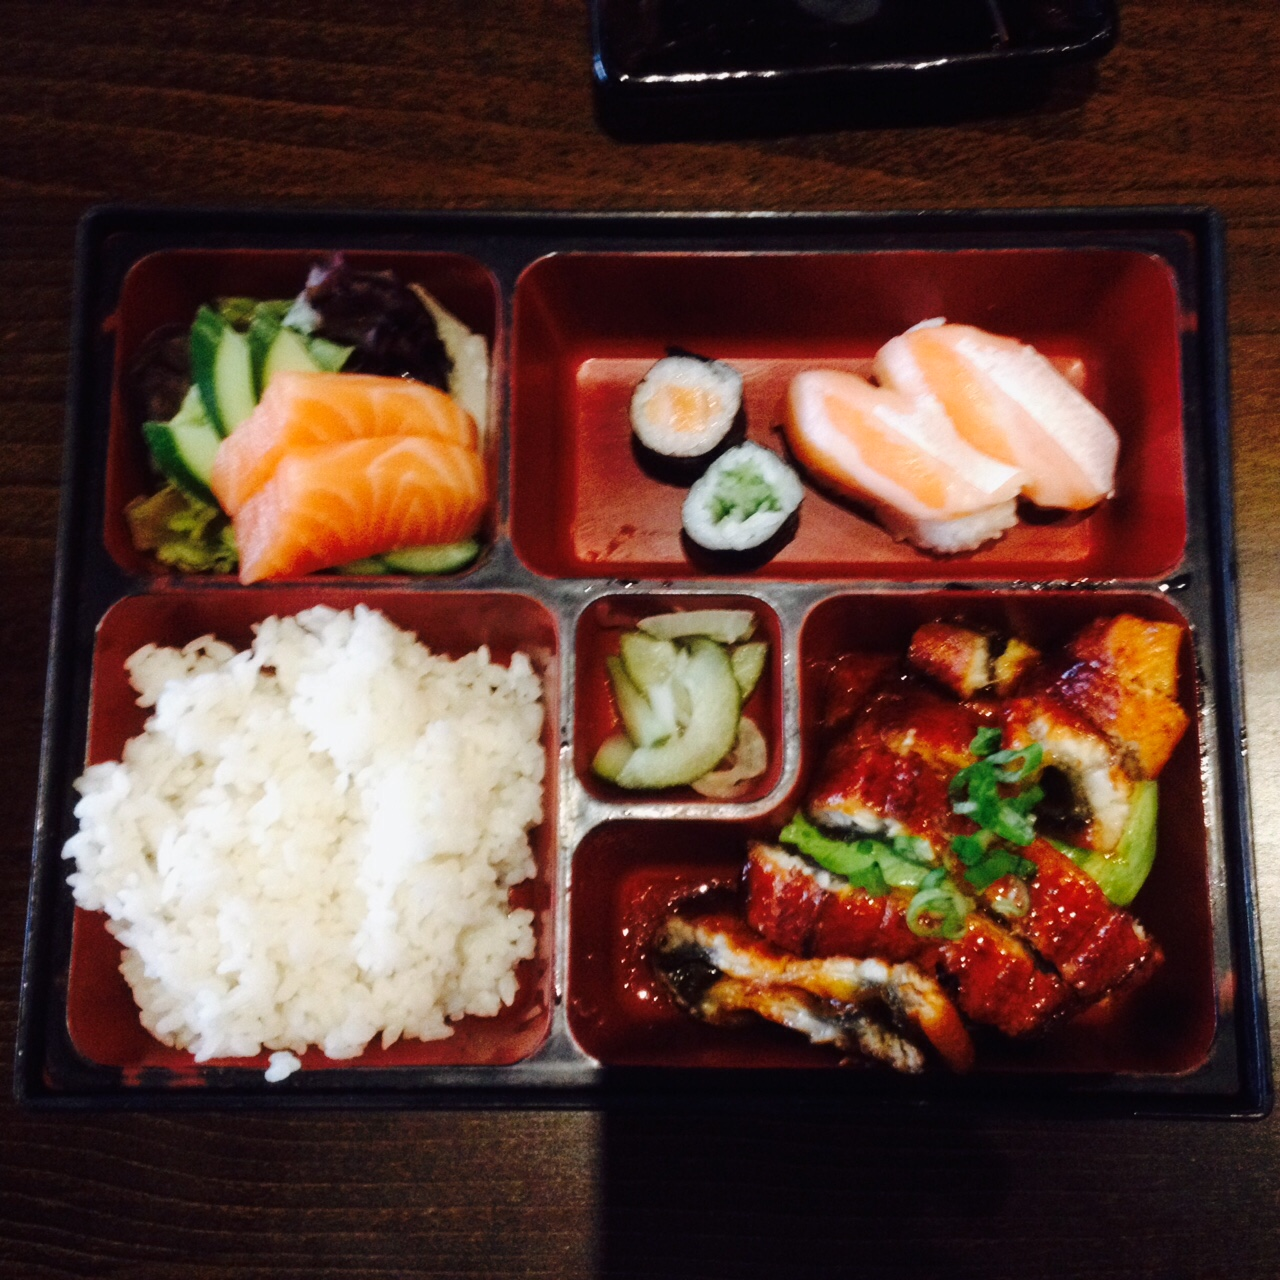 My Unagi (eel!) bento box